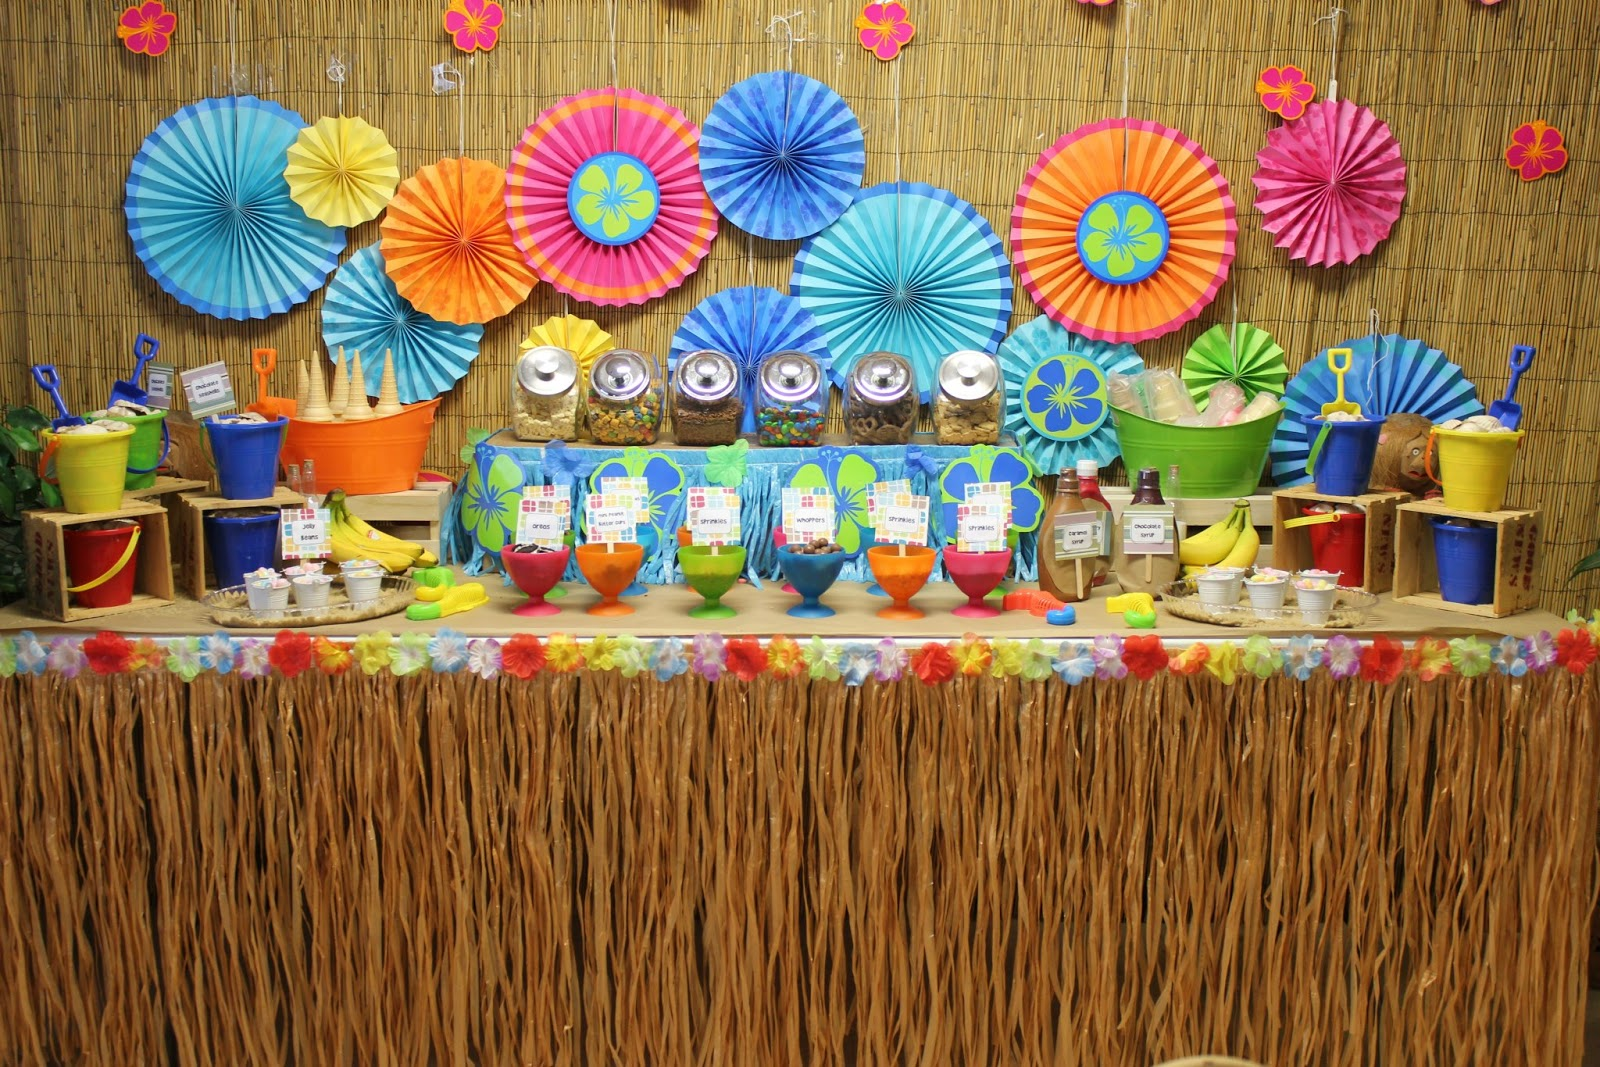 Do it yourself decorate a party craft project ideas and crafts art do it yourself decorate a party solutioingenieria Images